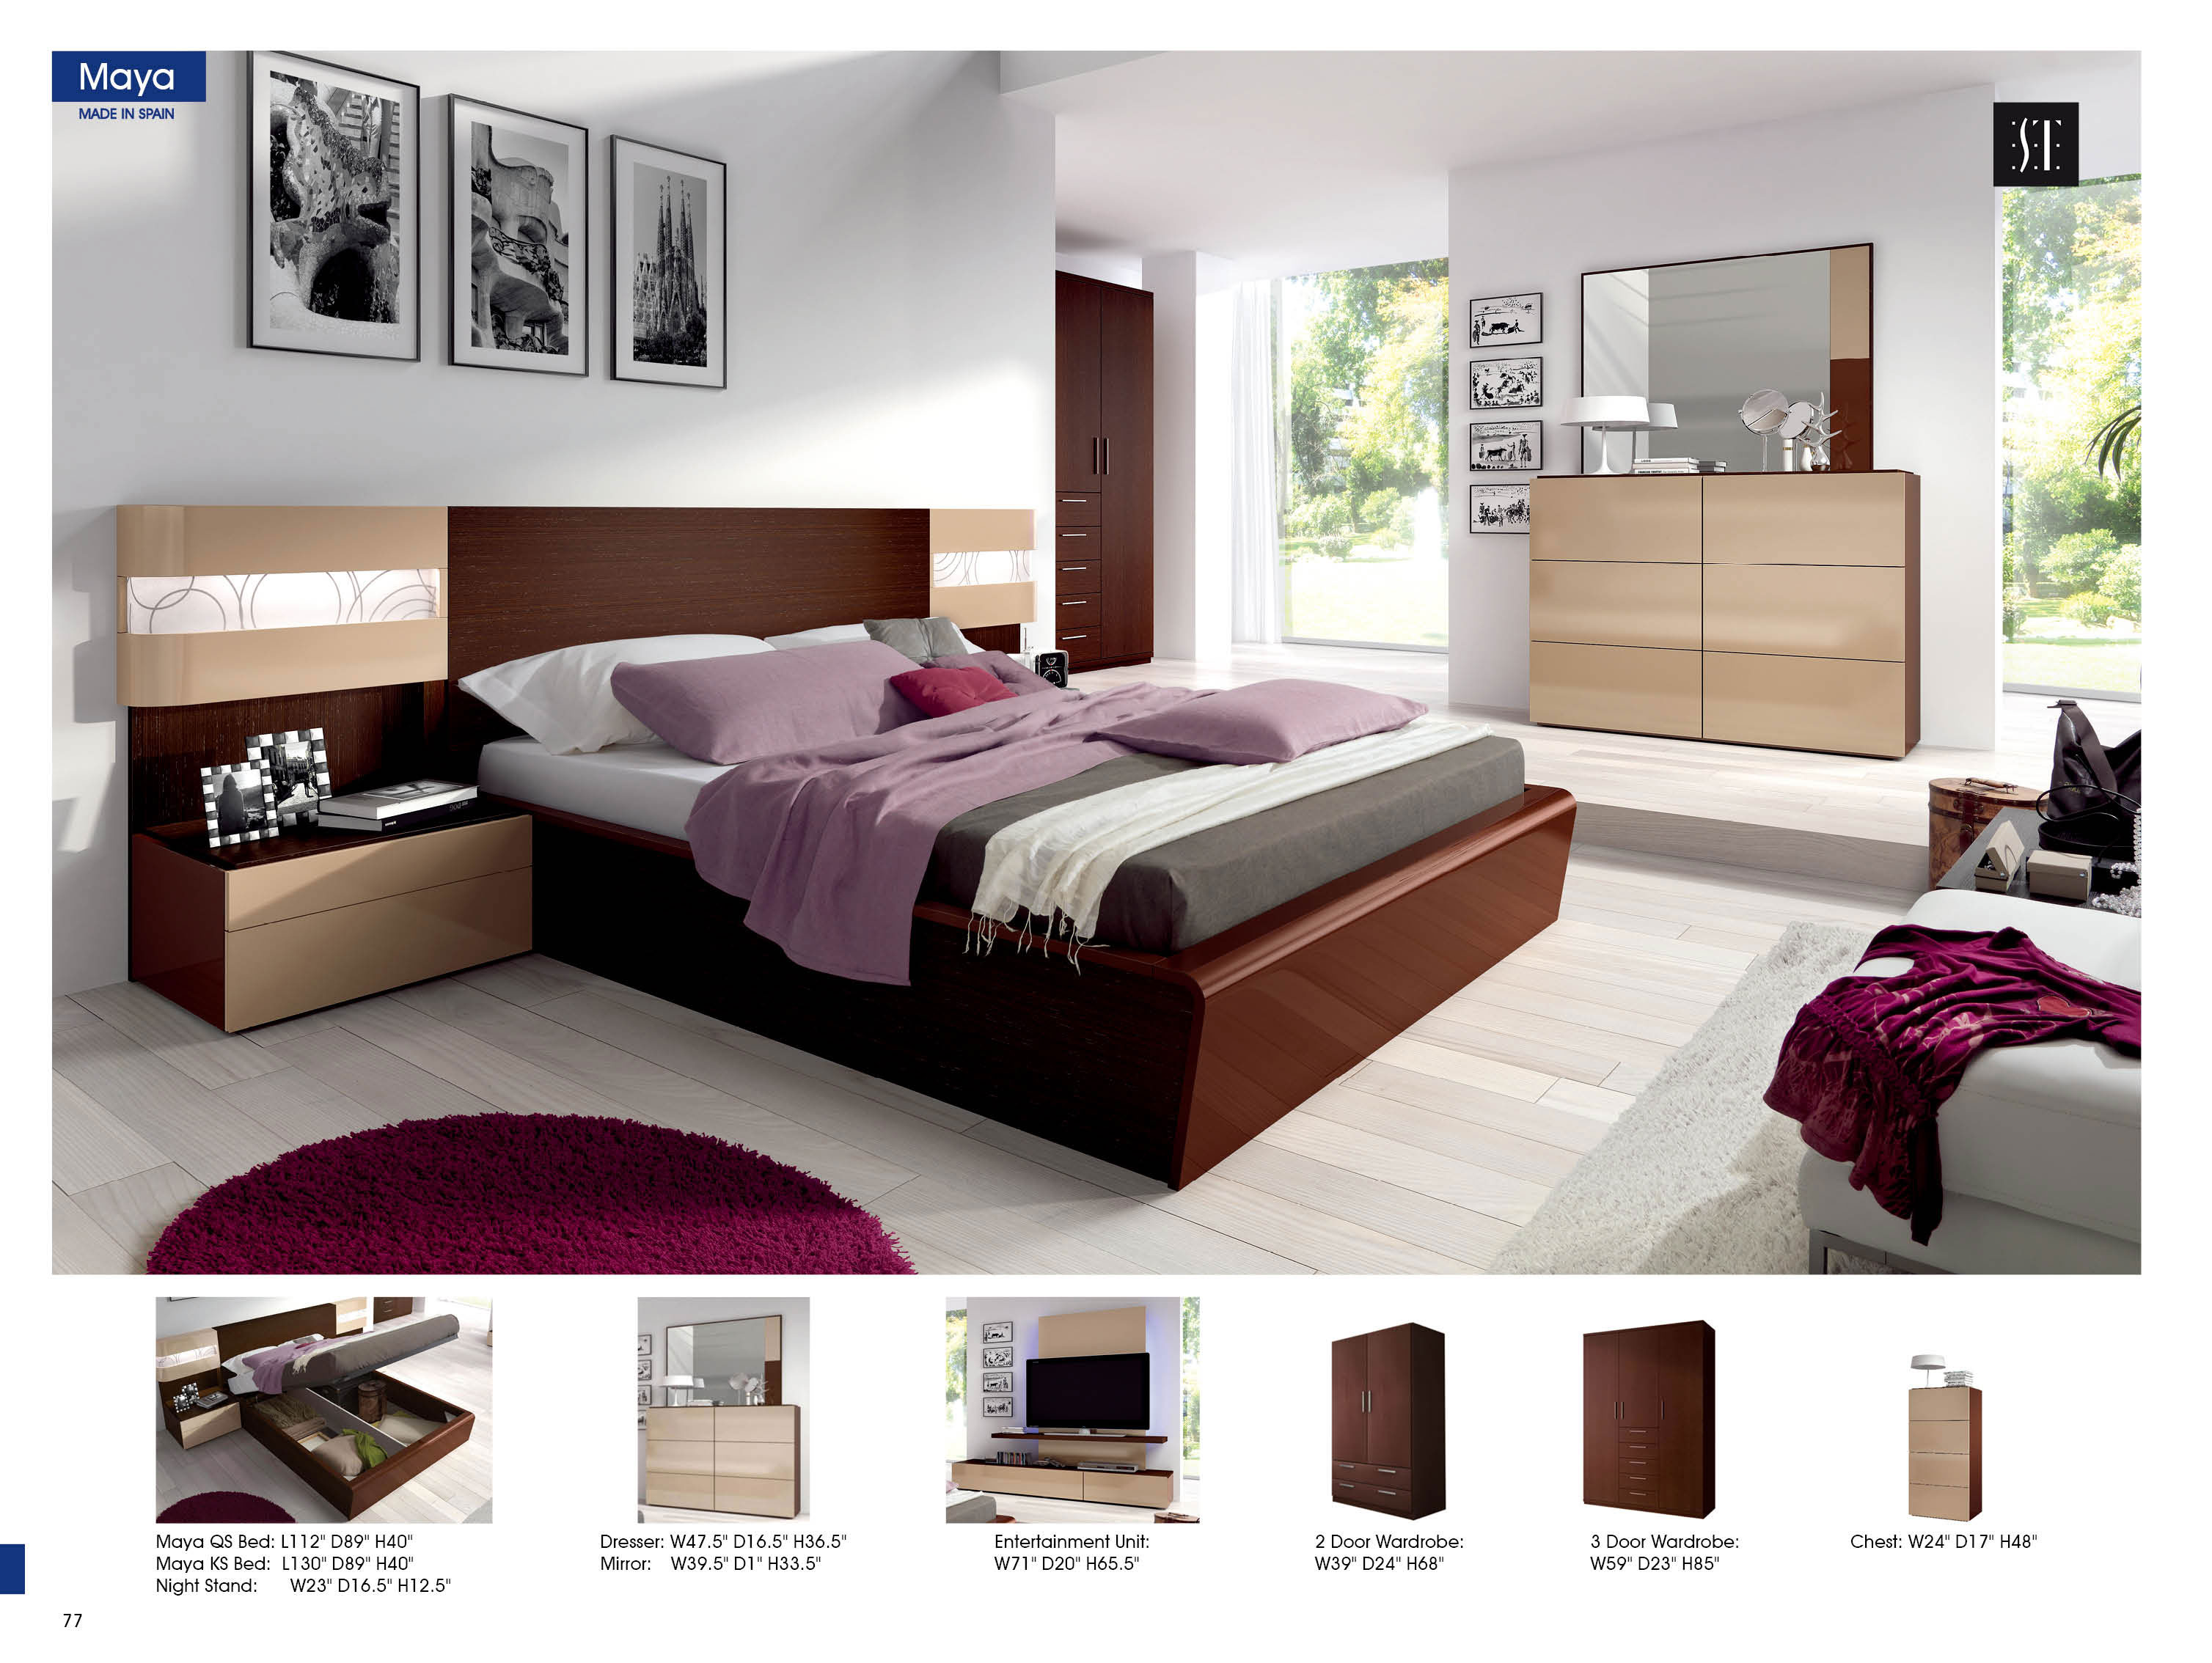 30 Off Maya Modern Bedrooms Bedroom Furniture